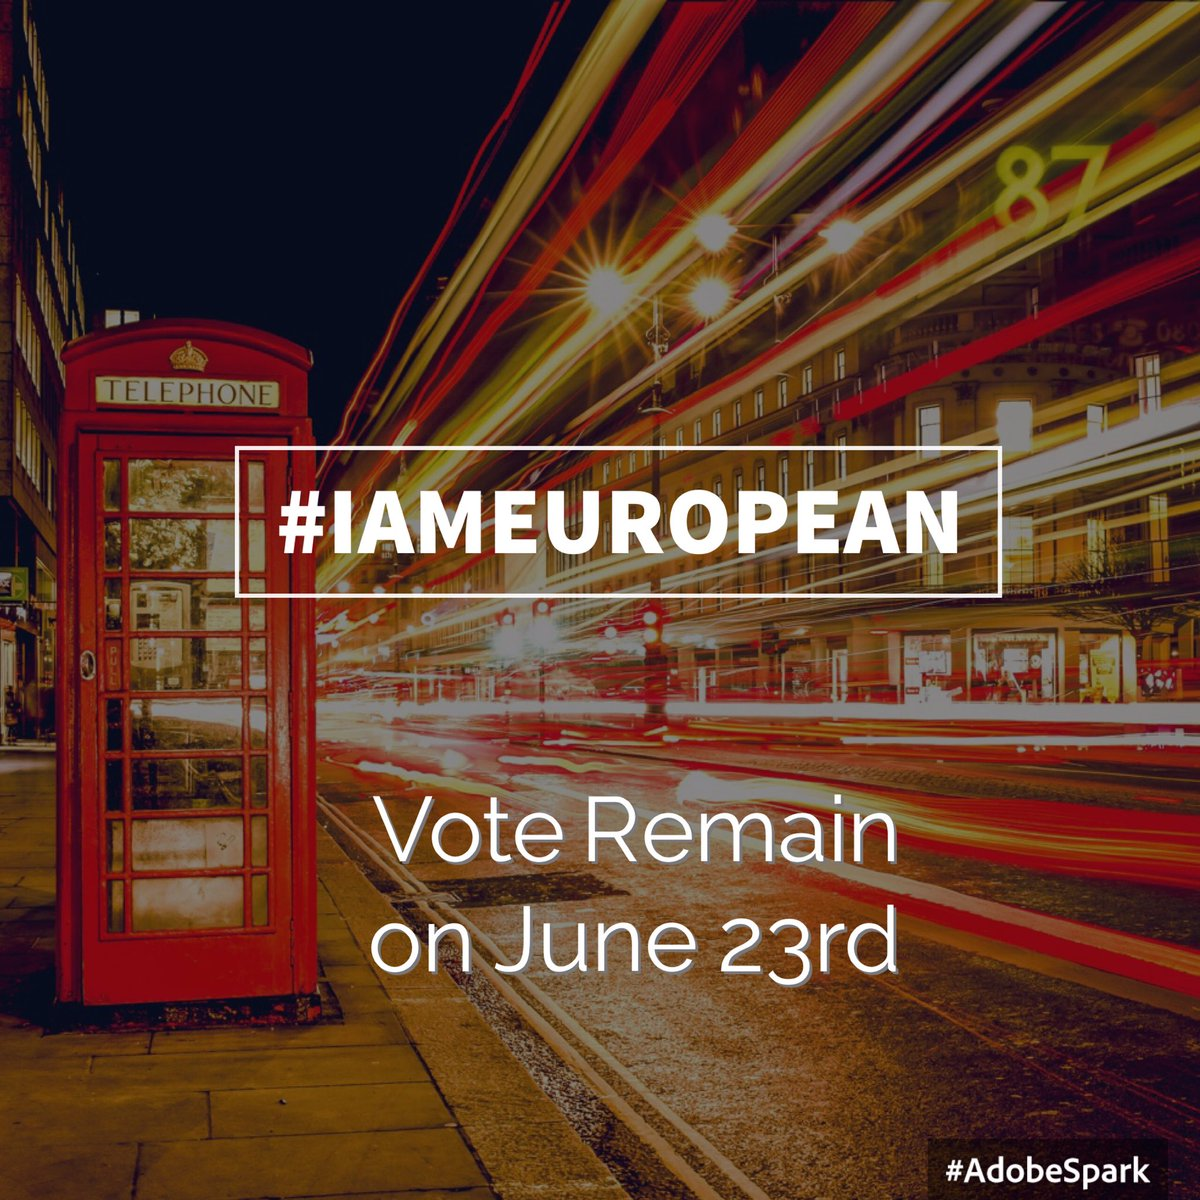 Ok let's get this going people - tweet #IAmEuropean if you are going to #VoteRemain to claim our common identity https://t.co/DkZ54bidU3